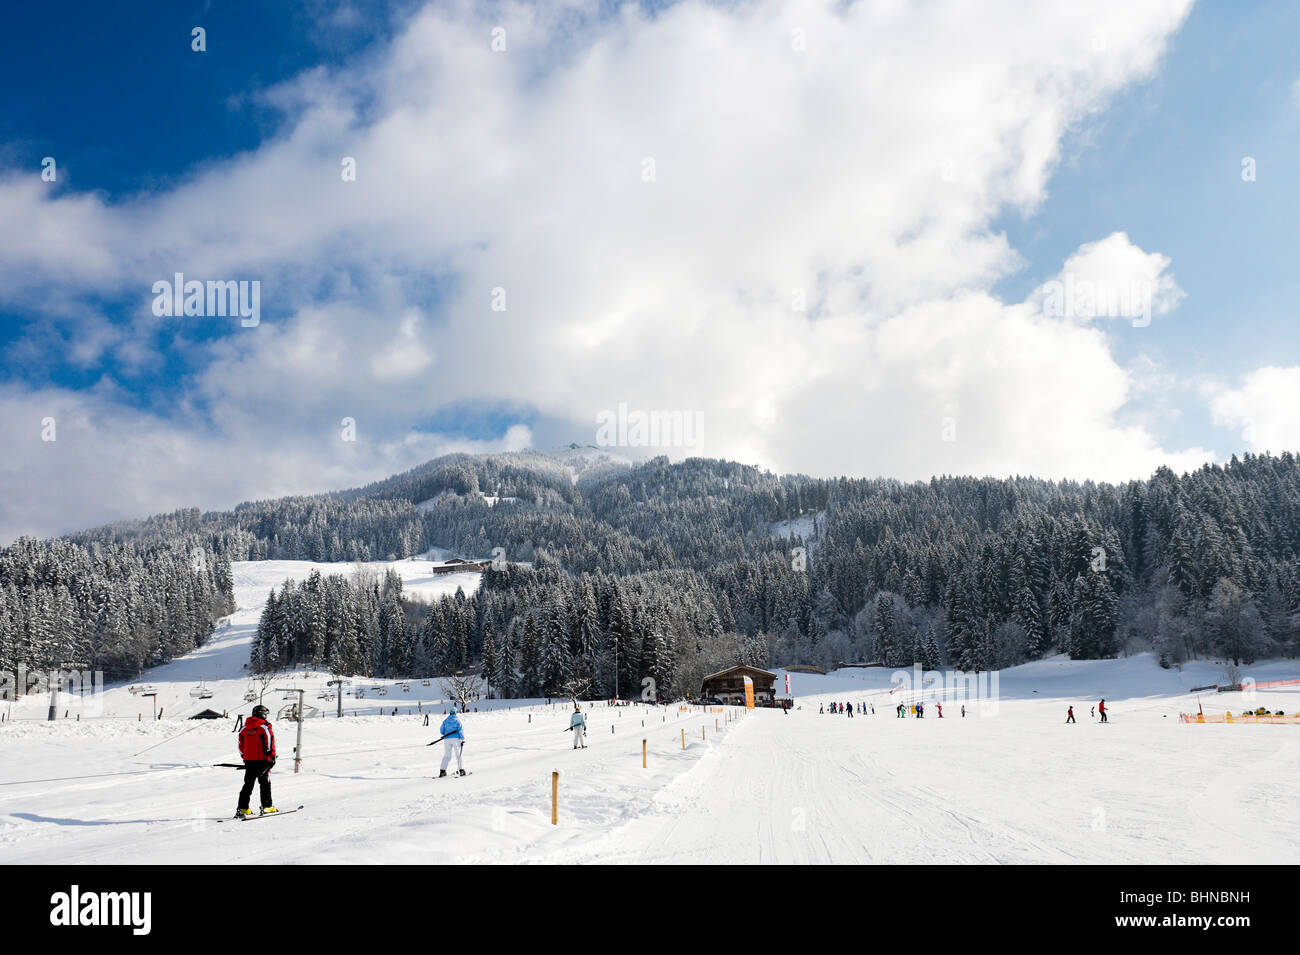 Drag lift and nursery slopes just outside the resort centre, Westendorf, Tyrol, Austria - Stock Image